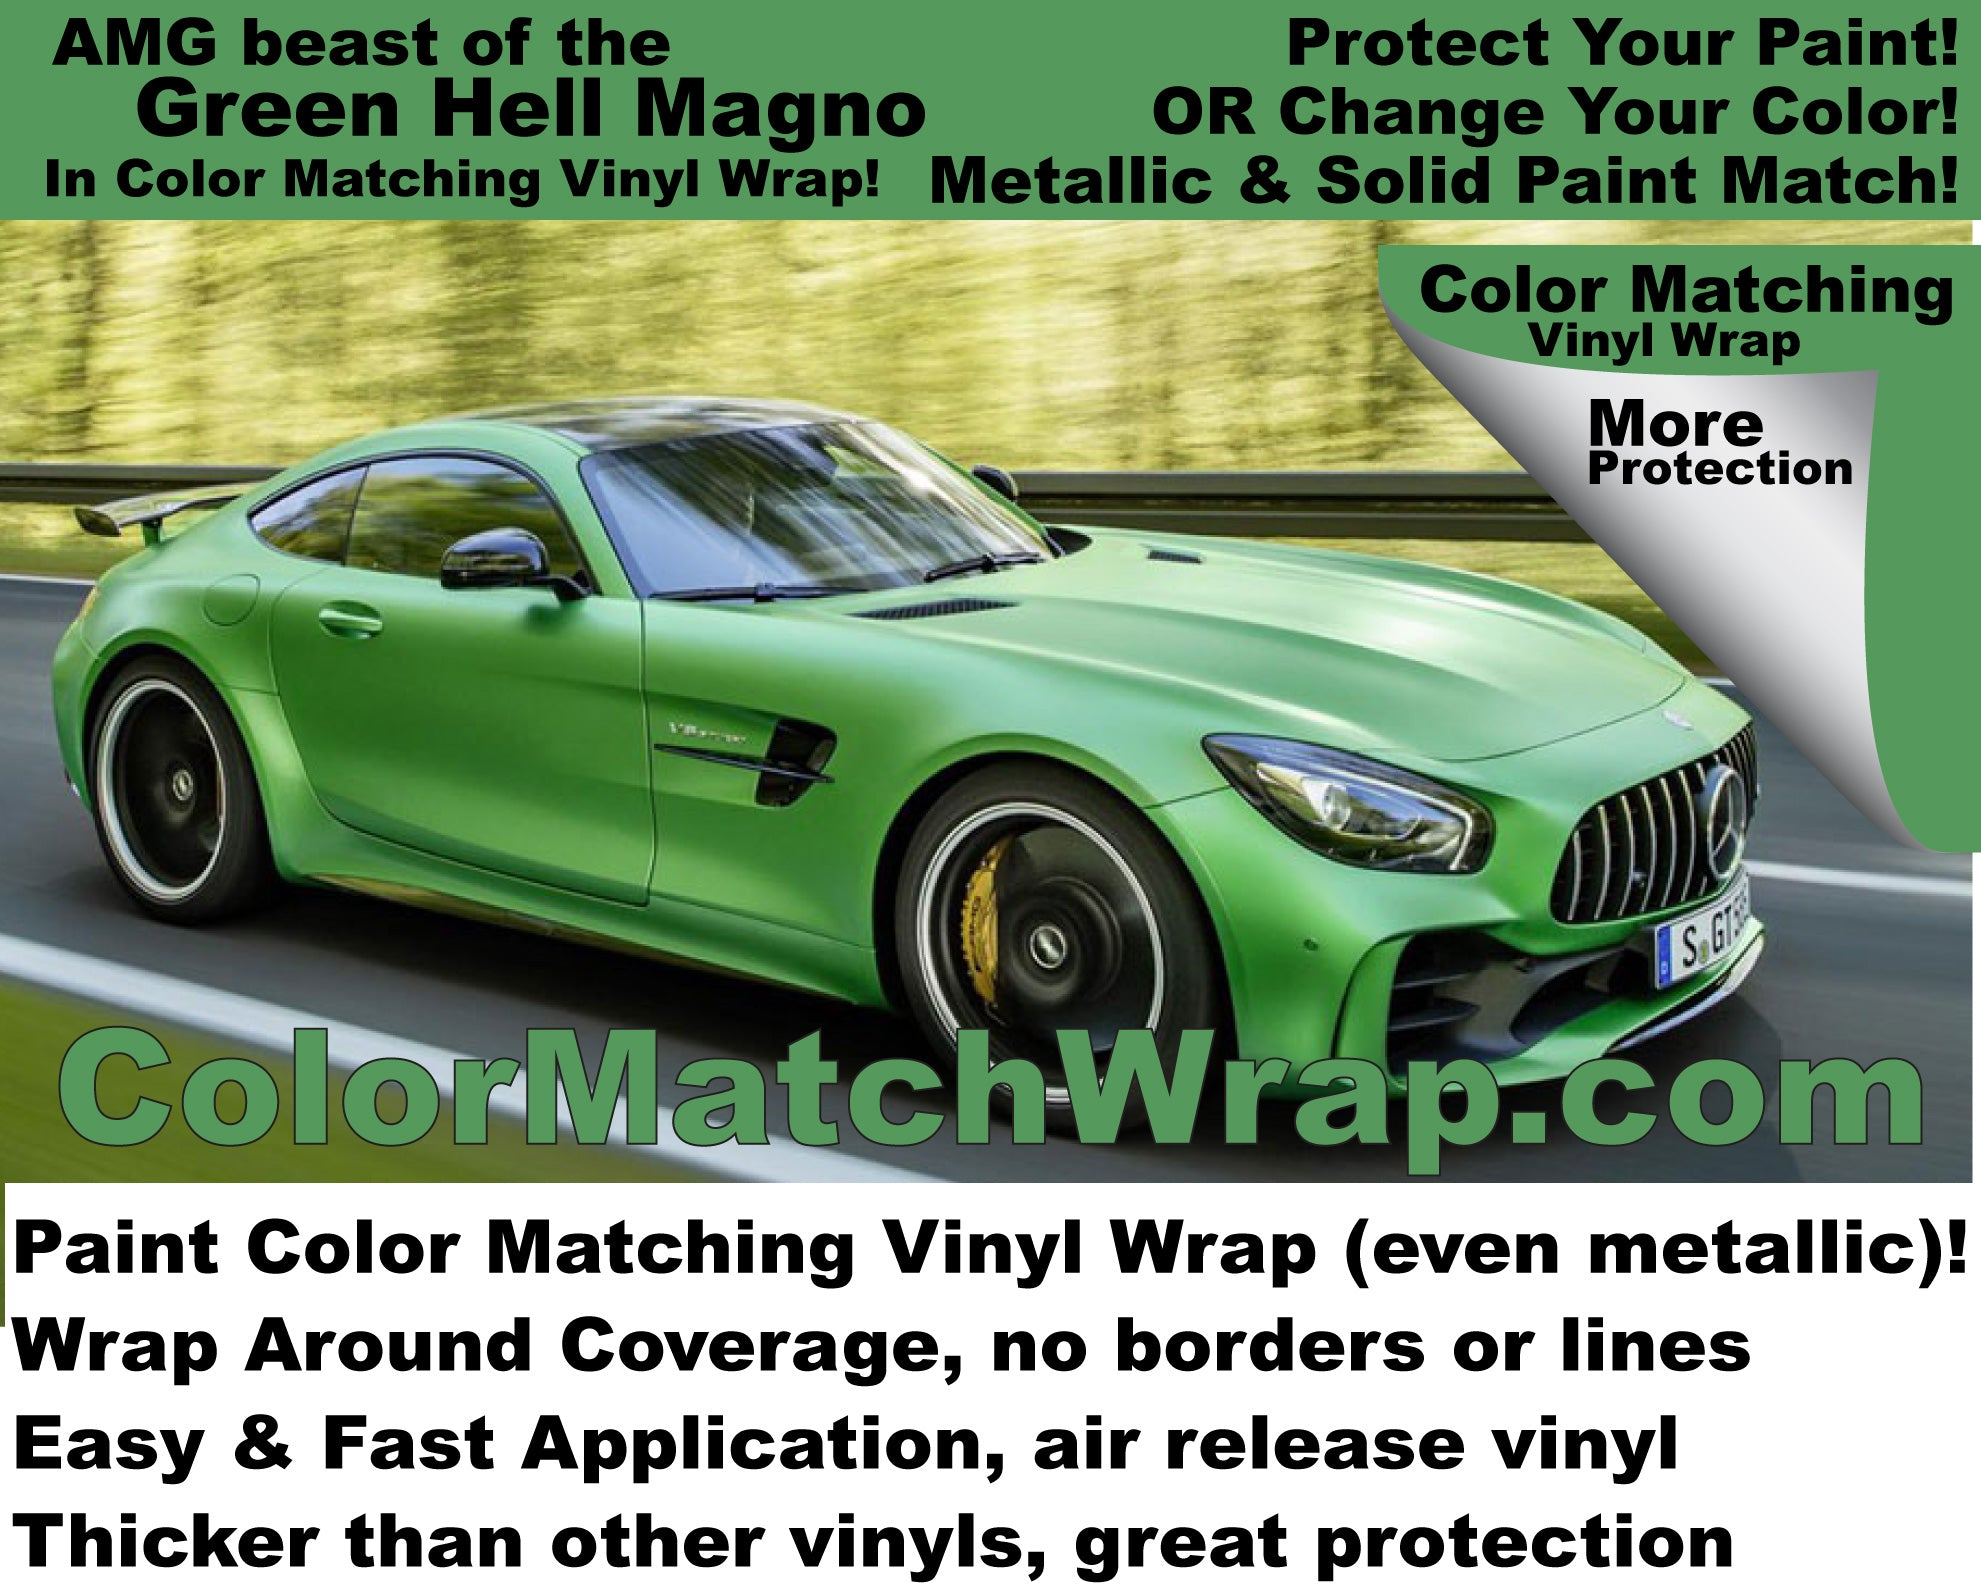 amg gt r beast of the green hell vinyl wrap